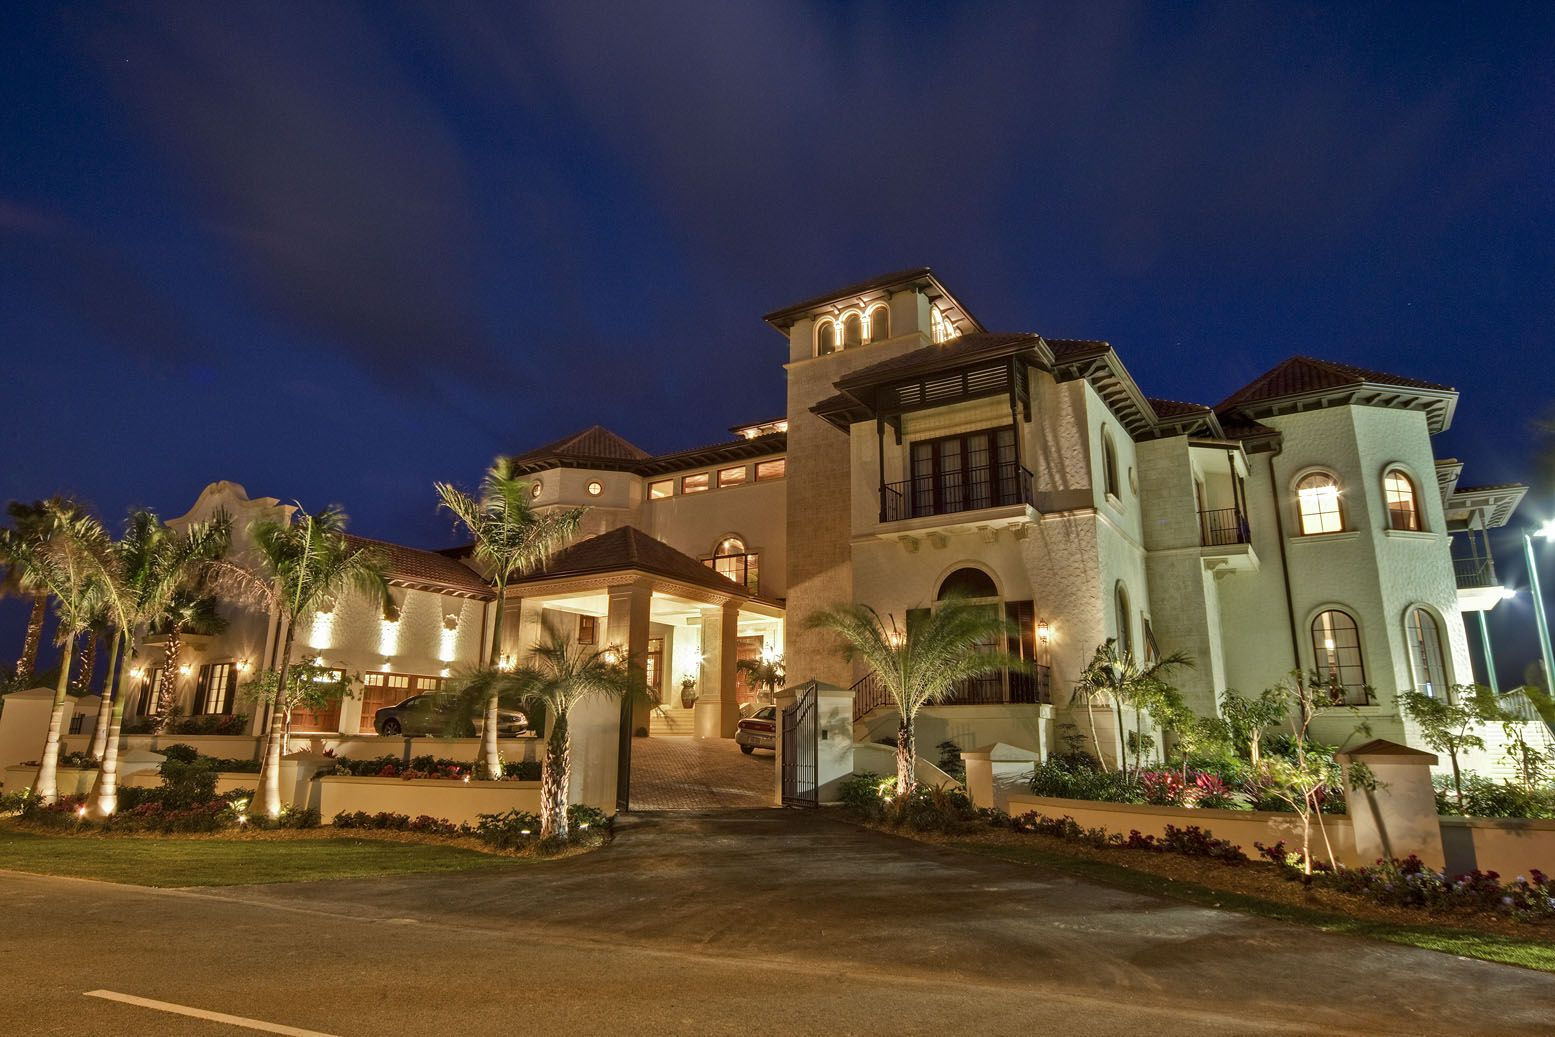 Mansions cayman islands mega mansion homes of the rich for Dream house website